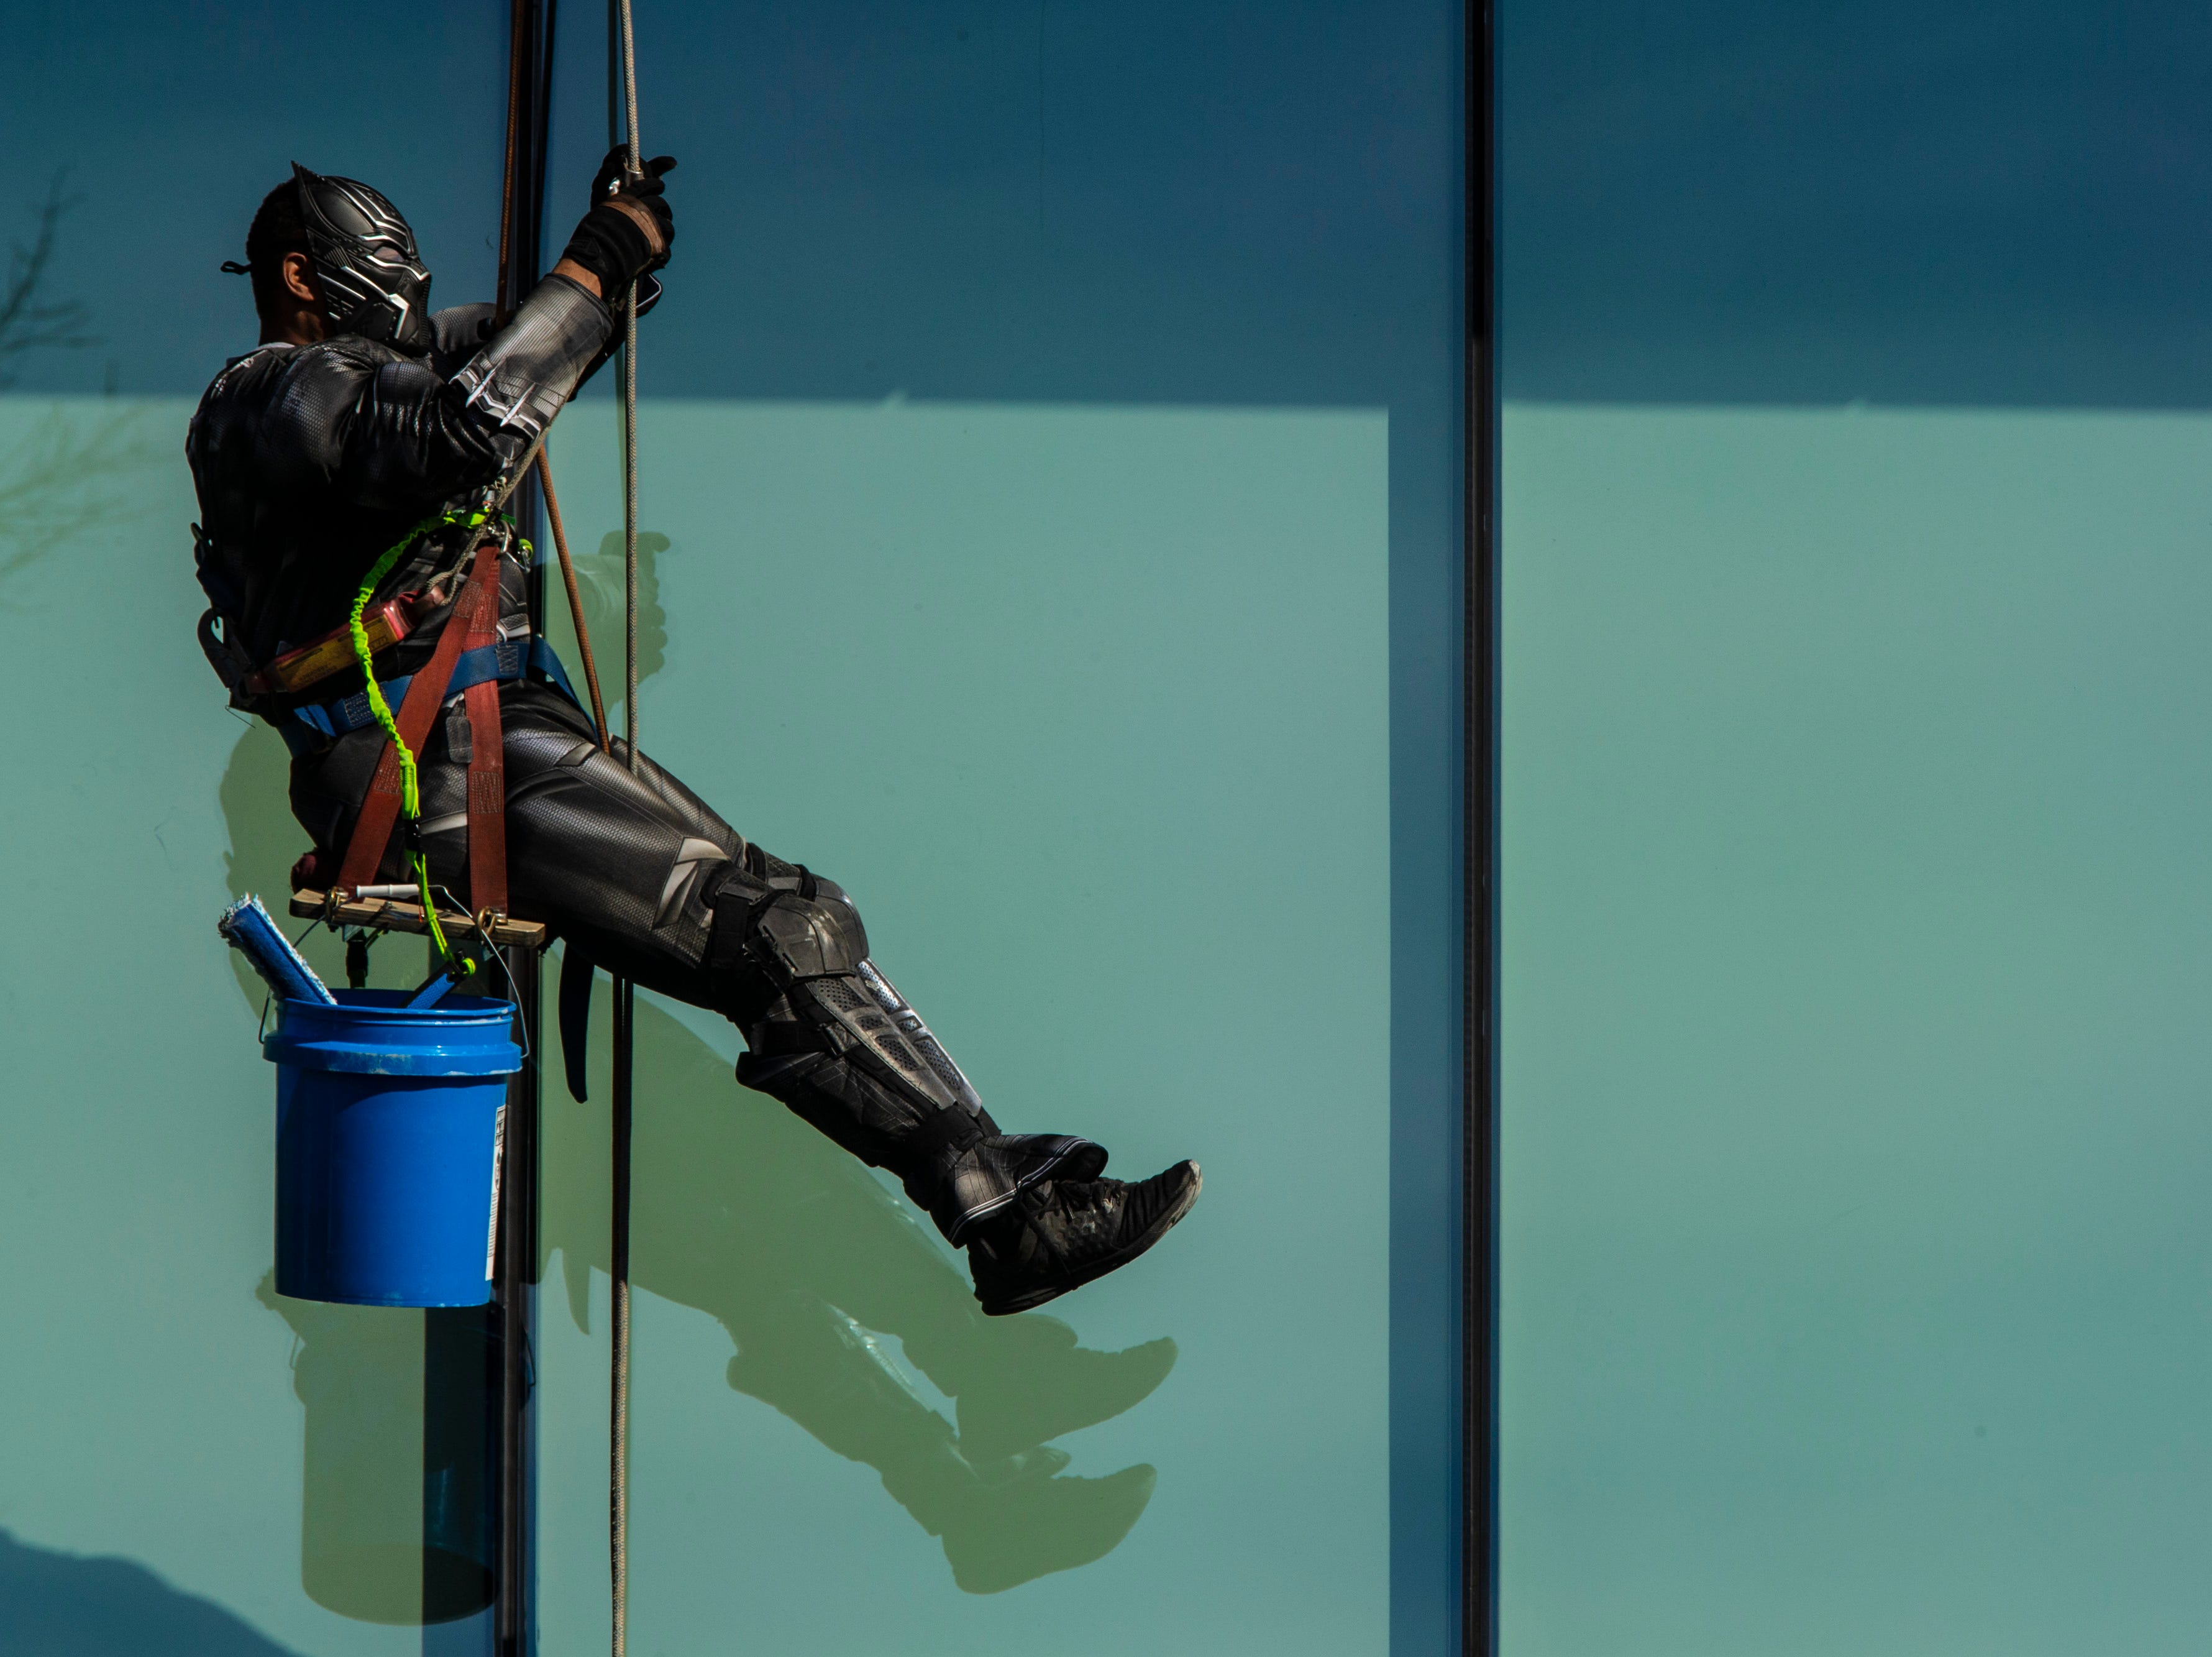 Lionel Bass with Pro Clean International wears a Black Panther costume as the team wore super hero costumes while cleaning the windows at Norton Children's Hospital on Thursday. Feb. 21, 2019